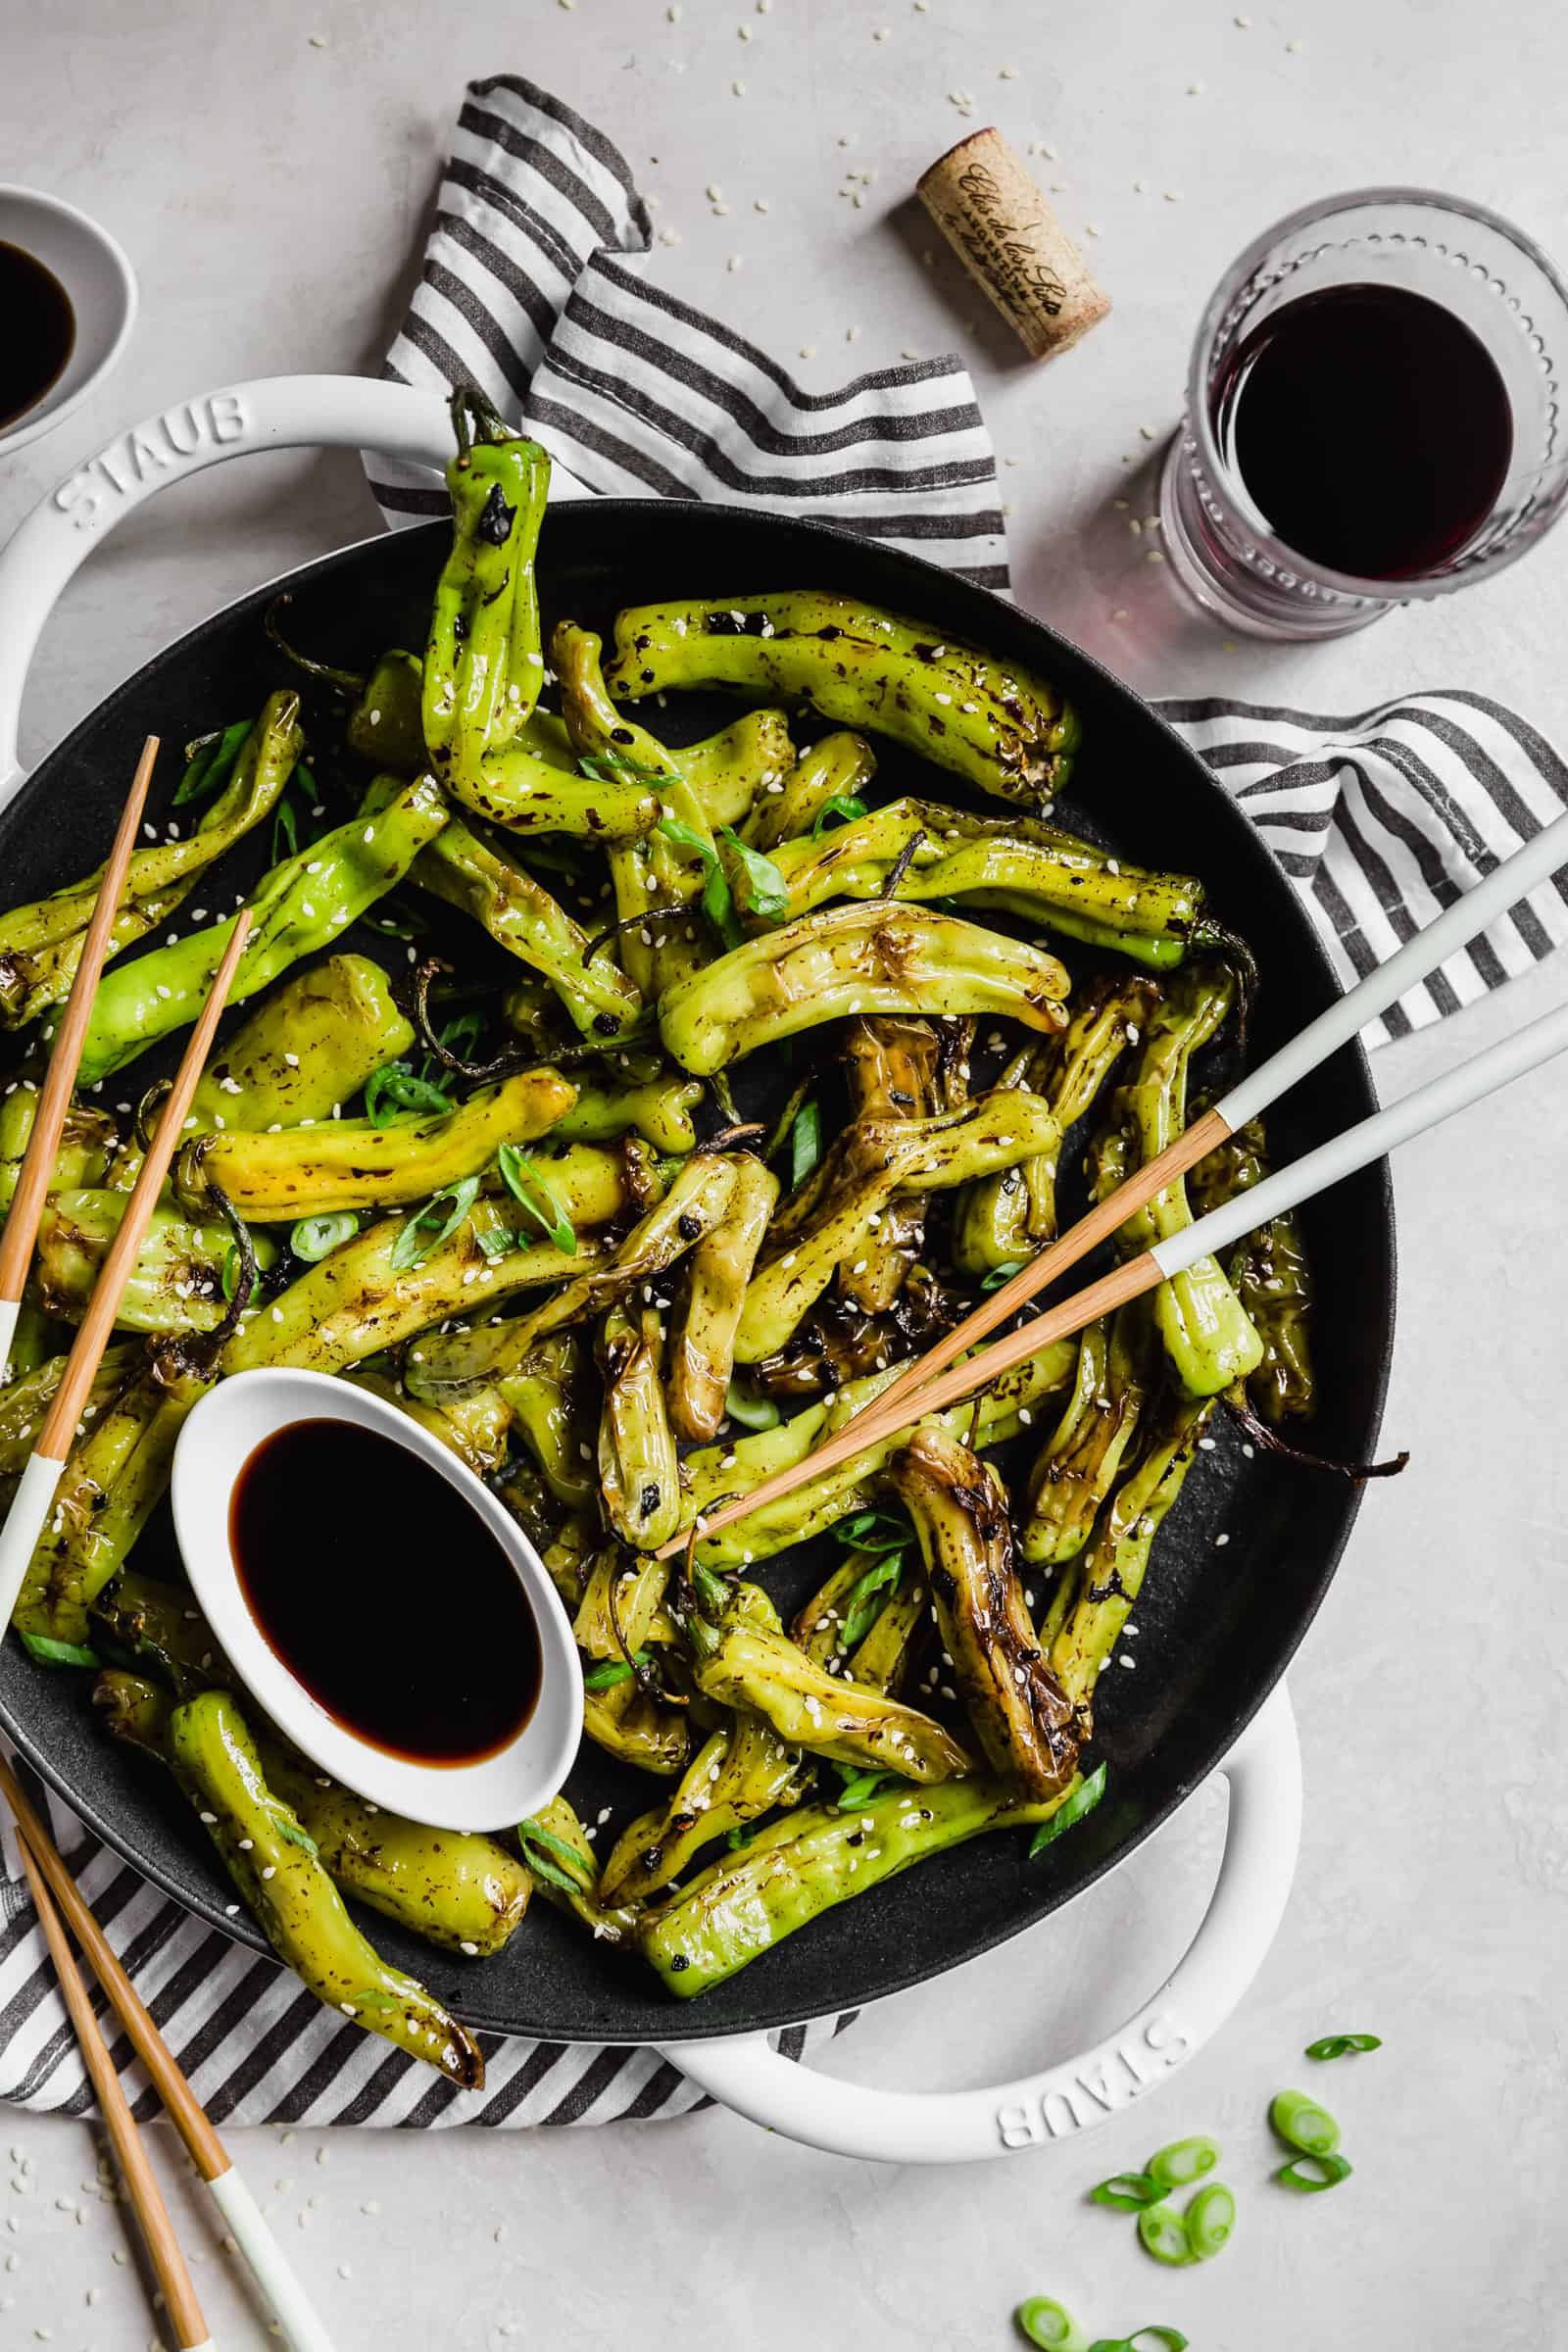 Shisito peppers with soy sauce and sesame